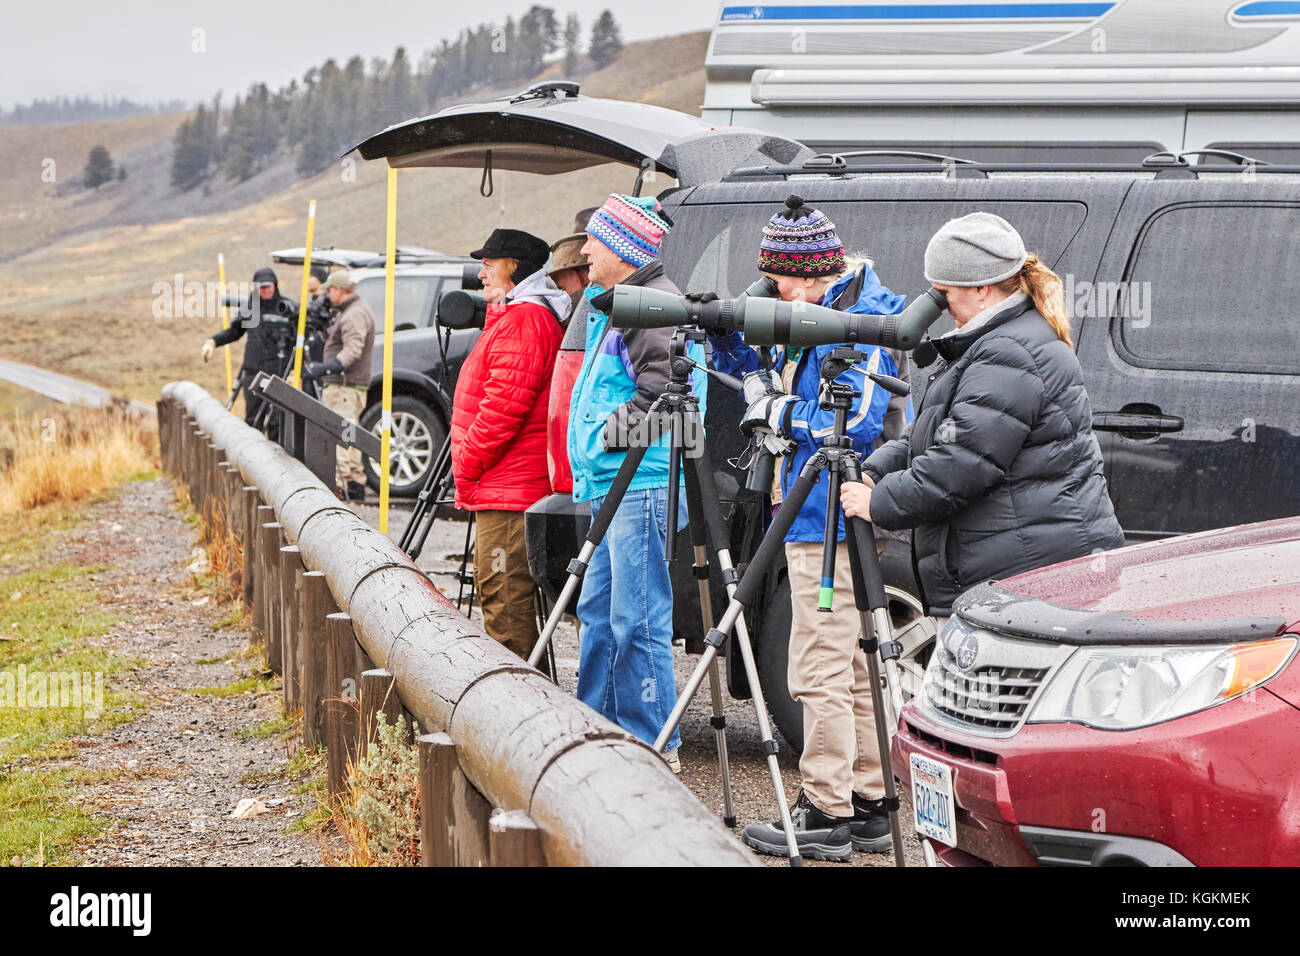 Yellowstone National Park, Wyoming, USA - October 29, 2016: Wildlife watchers observe wolfs in a cold rainy day. - Stock Image